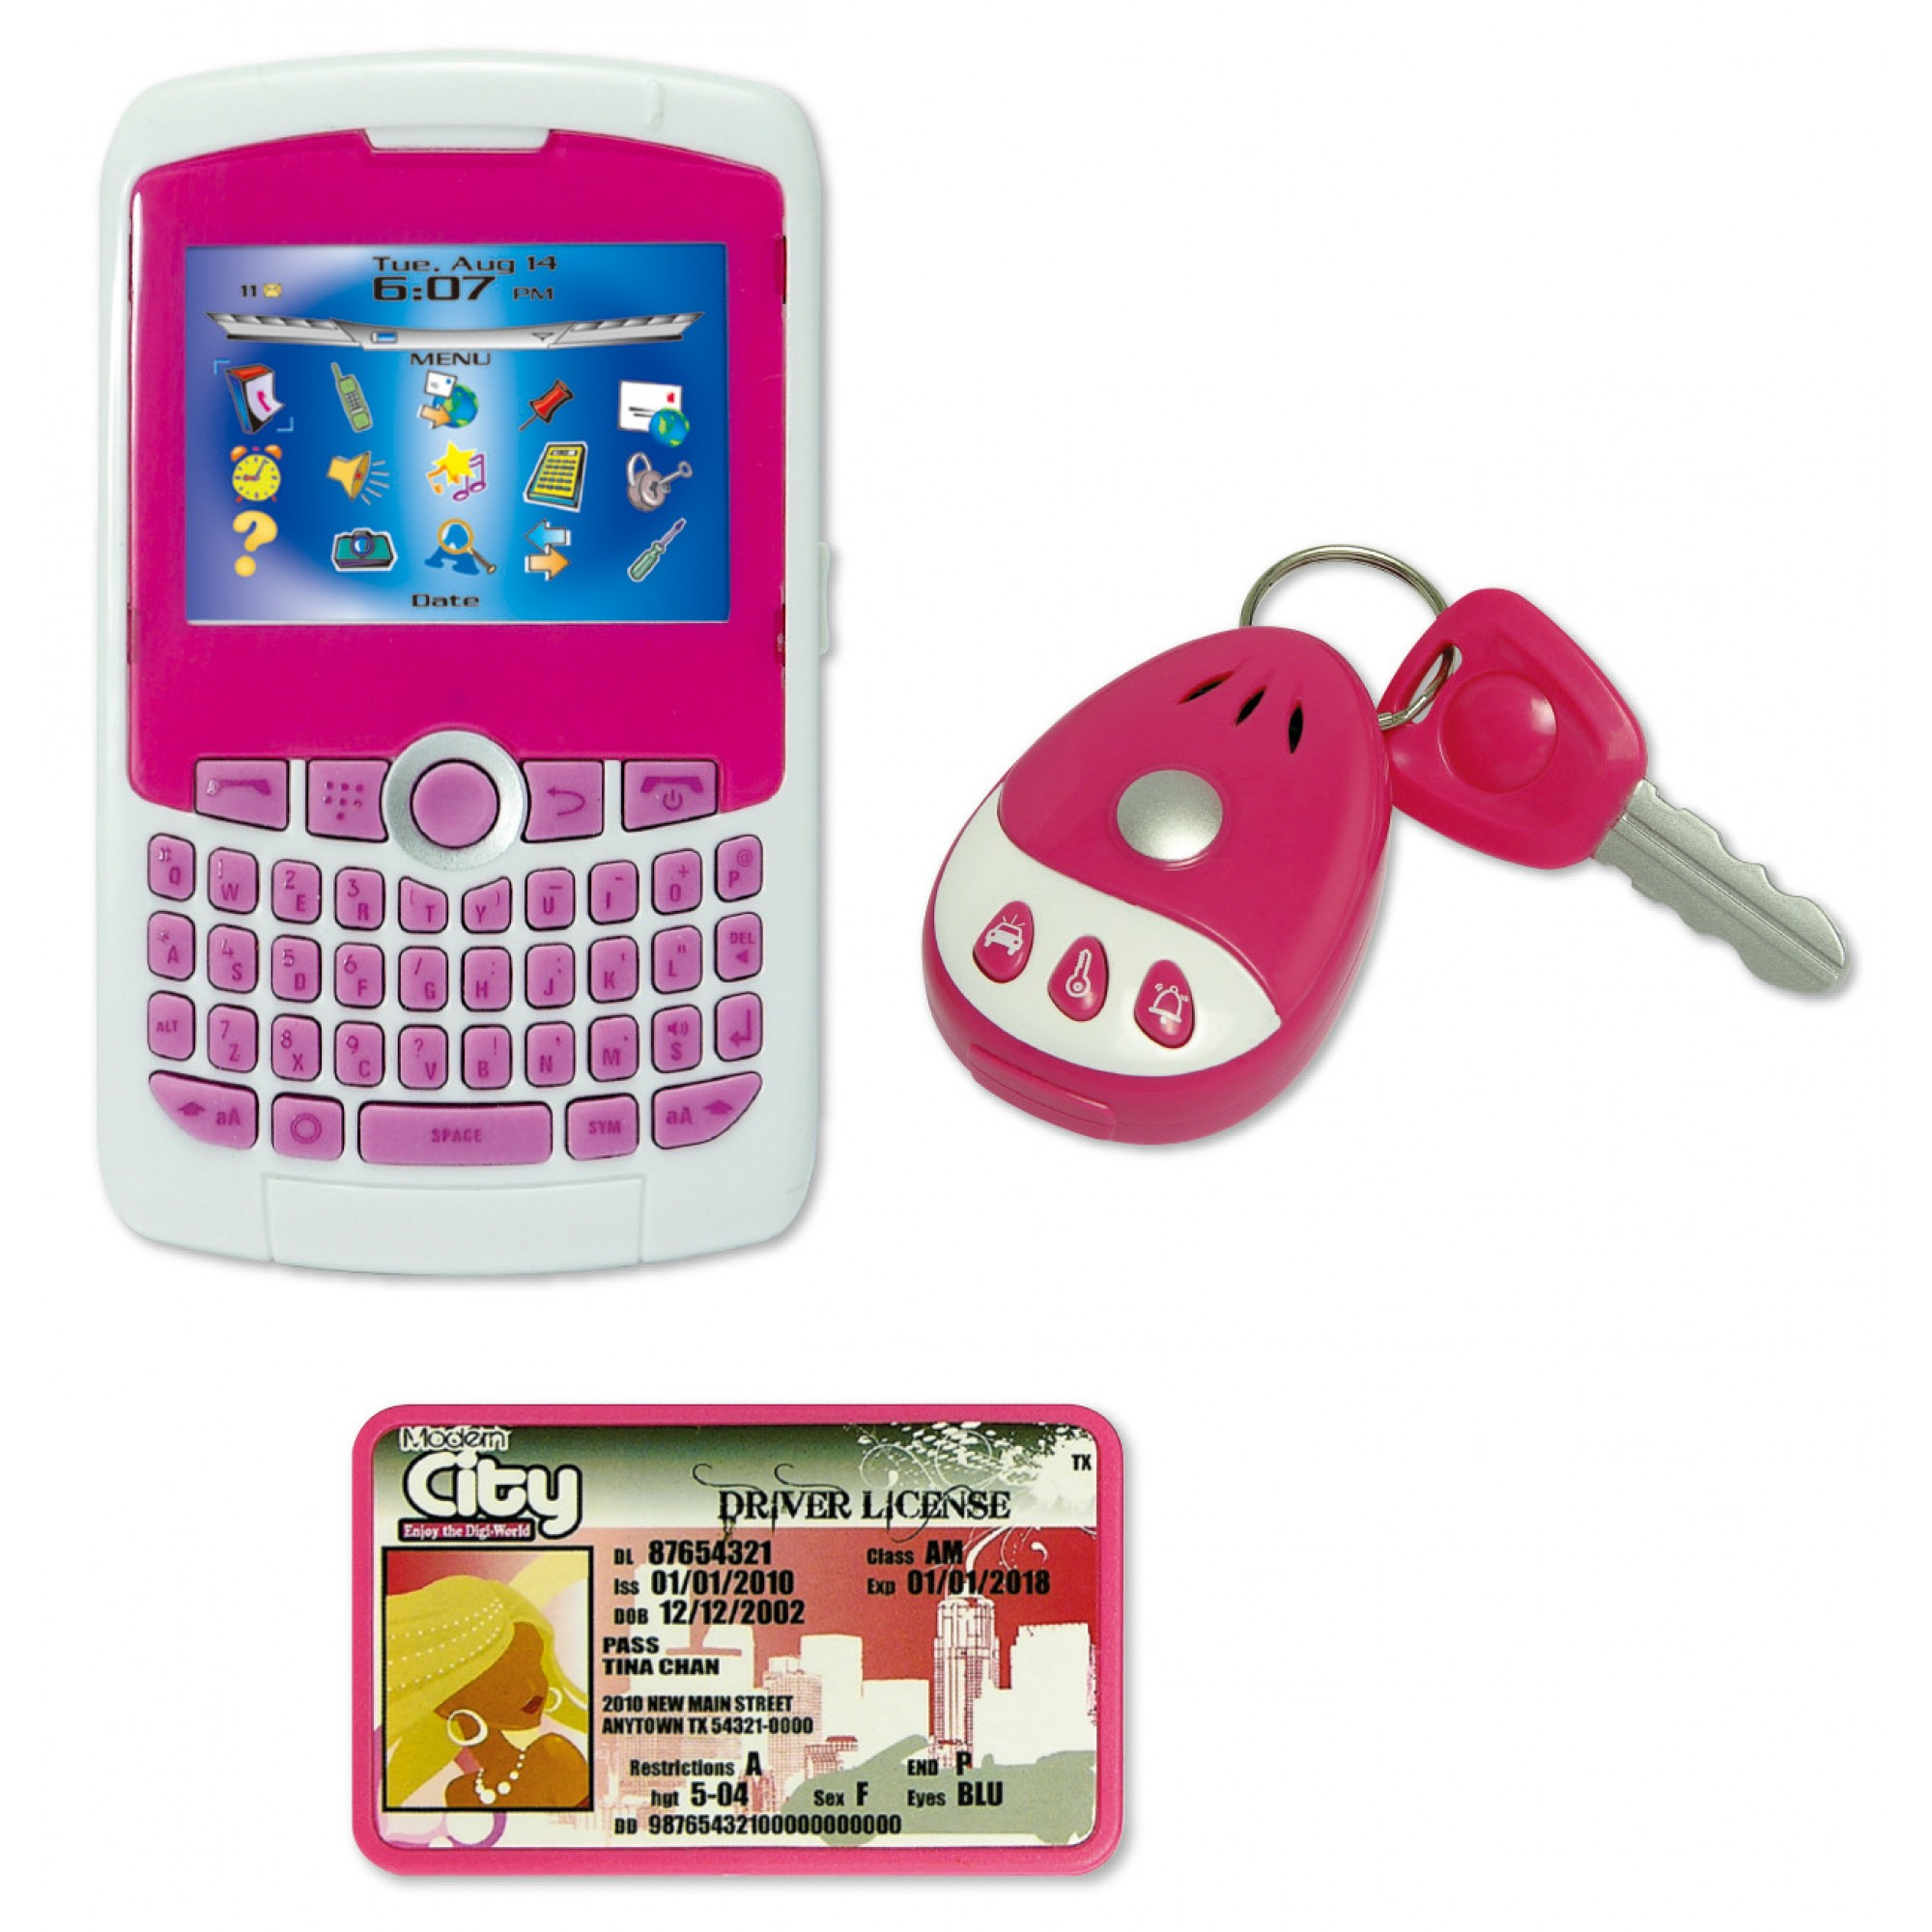 Modern City Play Phone Set w/Car Key